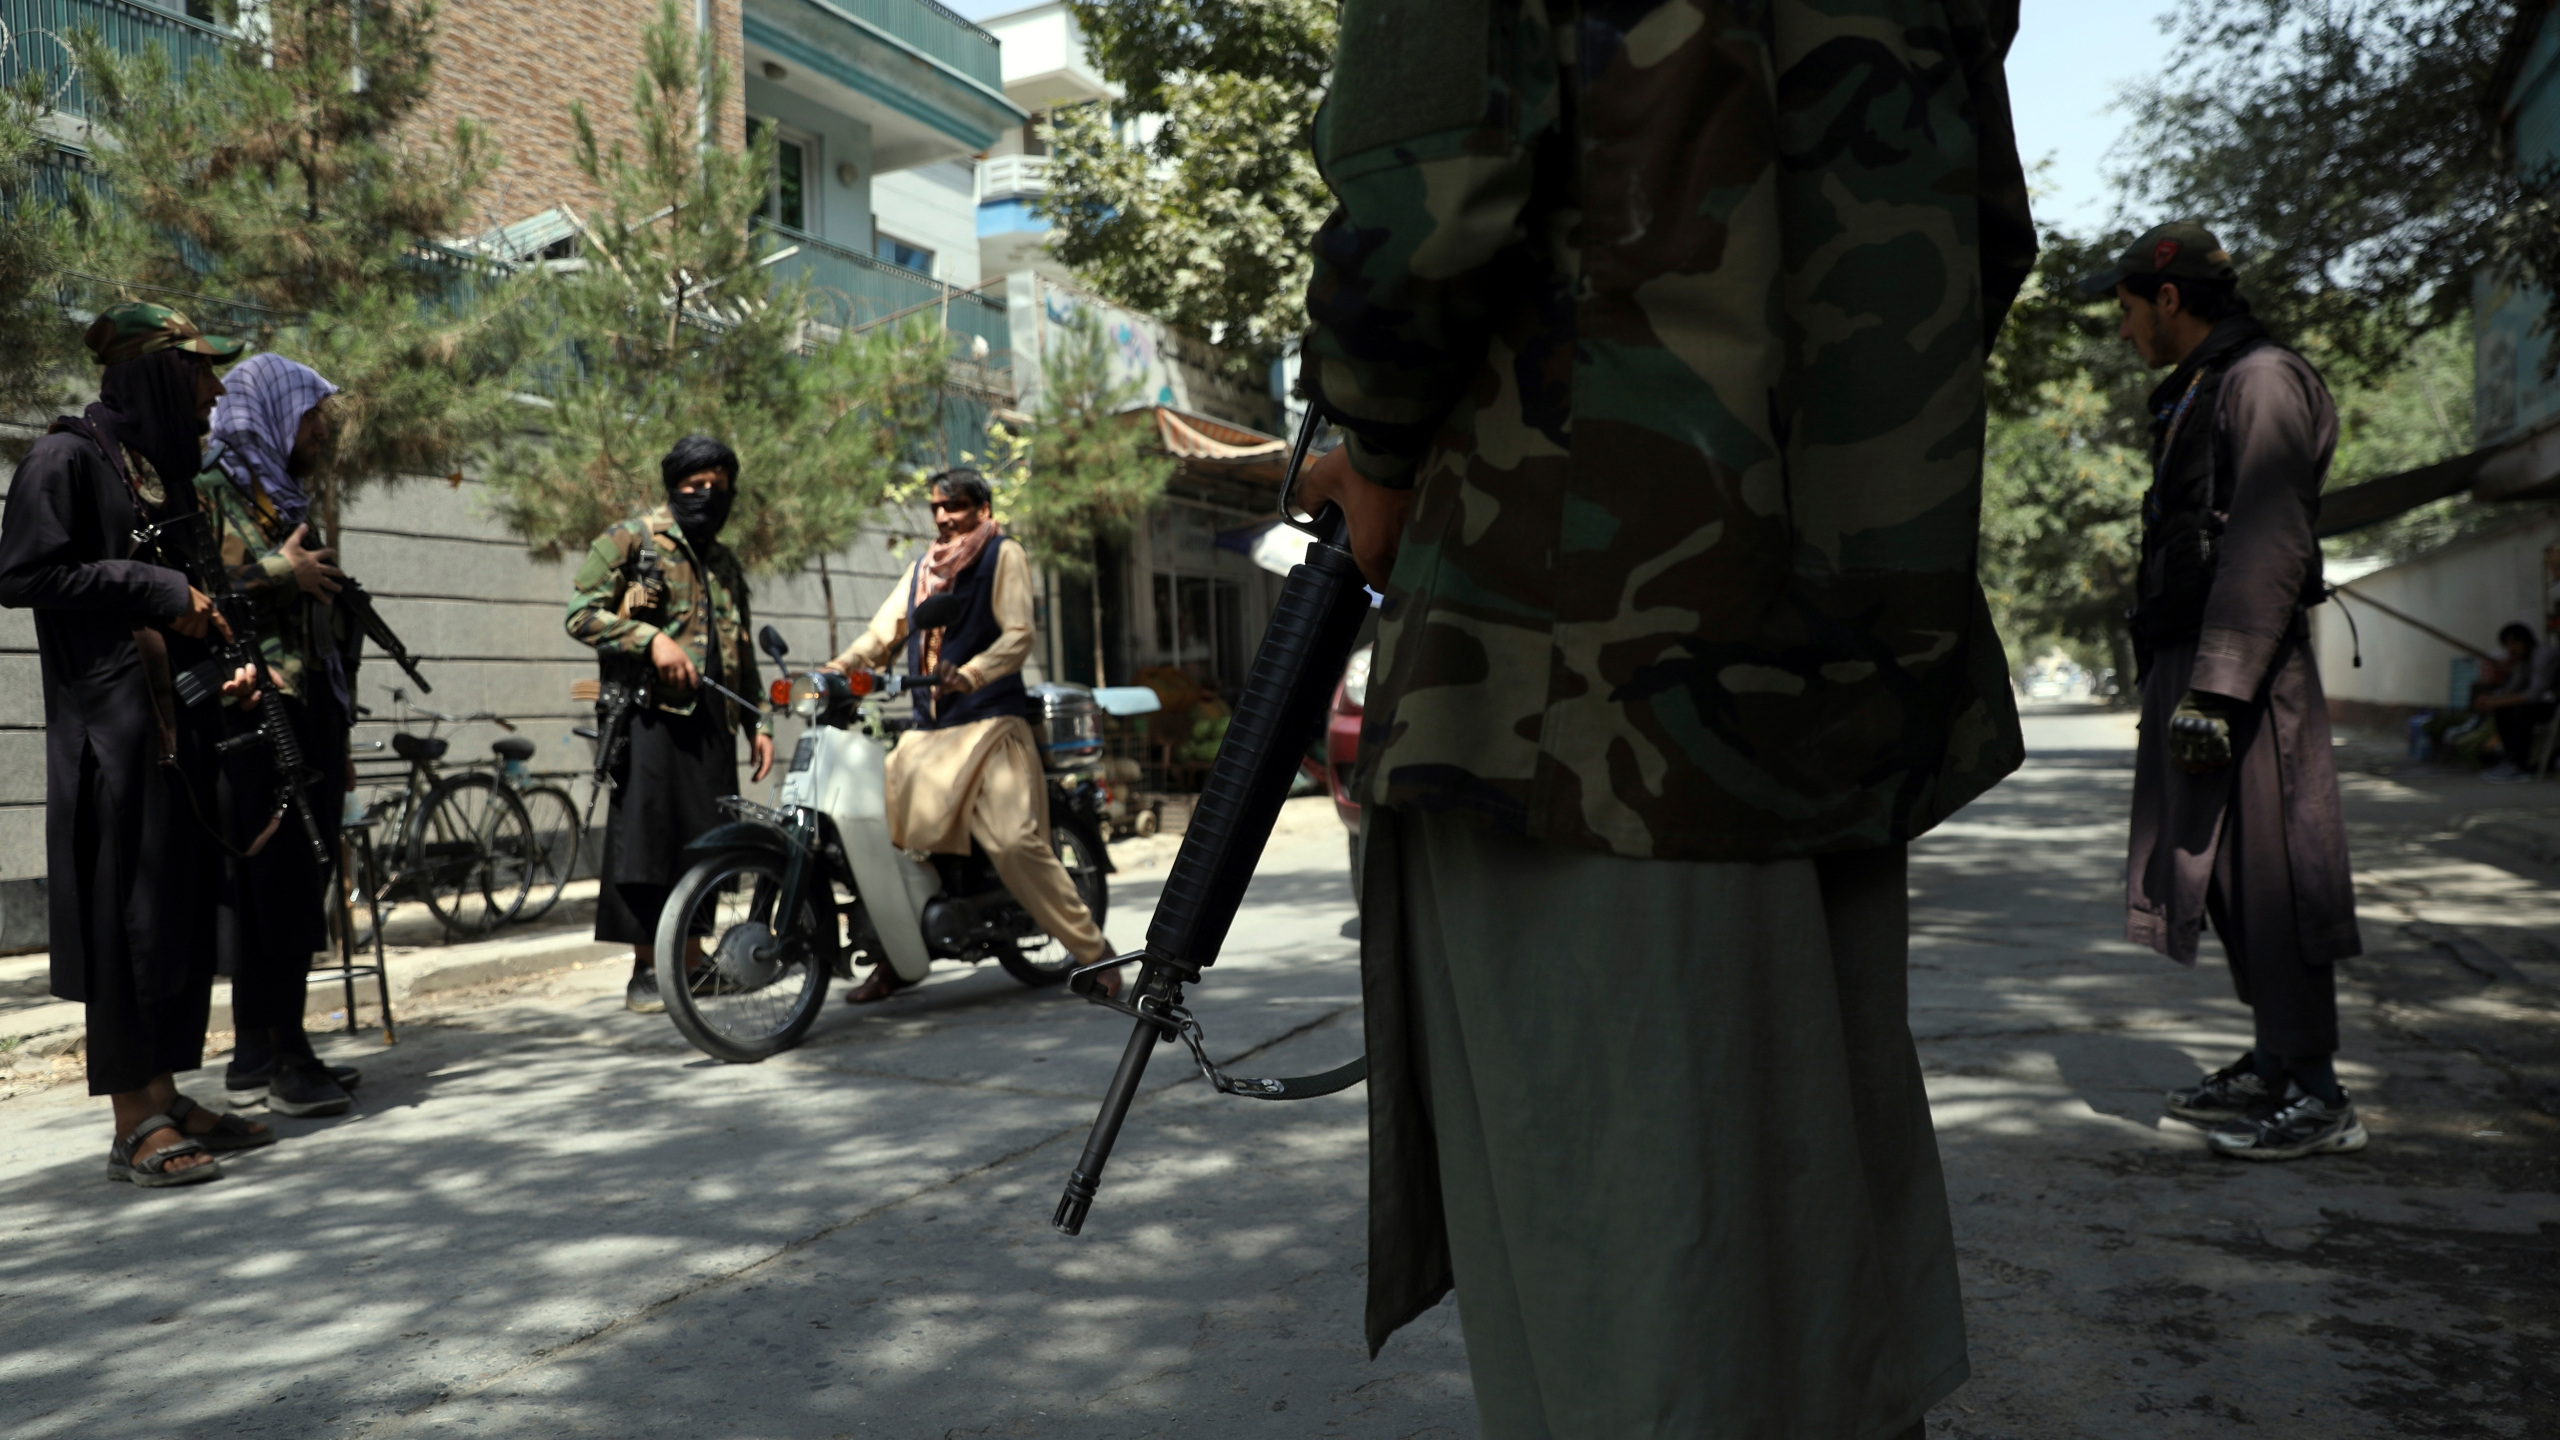 Taliban fighters stand guard at a checkpoint in the Wazir Akbar Khan neighborhood in the city of Kabul, Afghanistan, Sunday, Aug. 22, 2021. (AP Photo/Rahmat Gul)